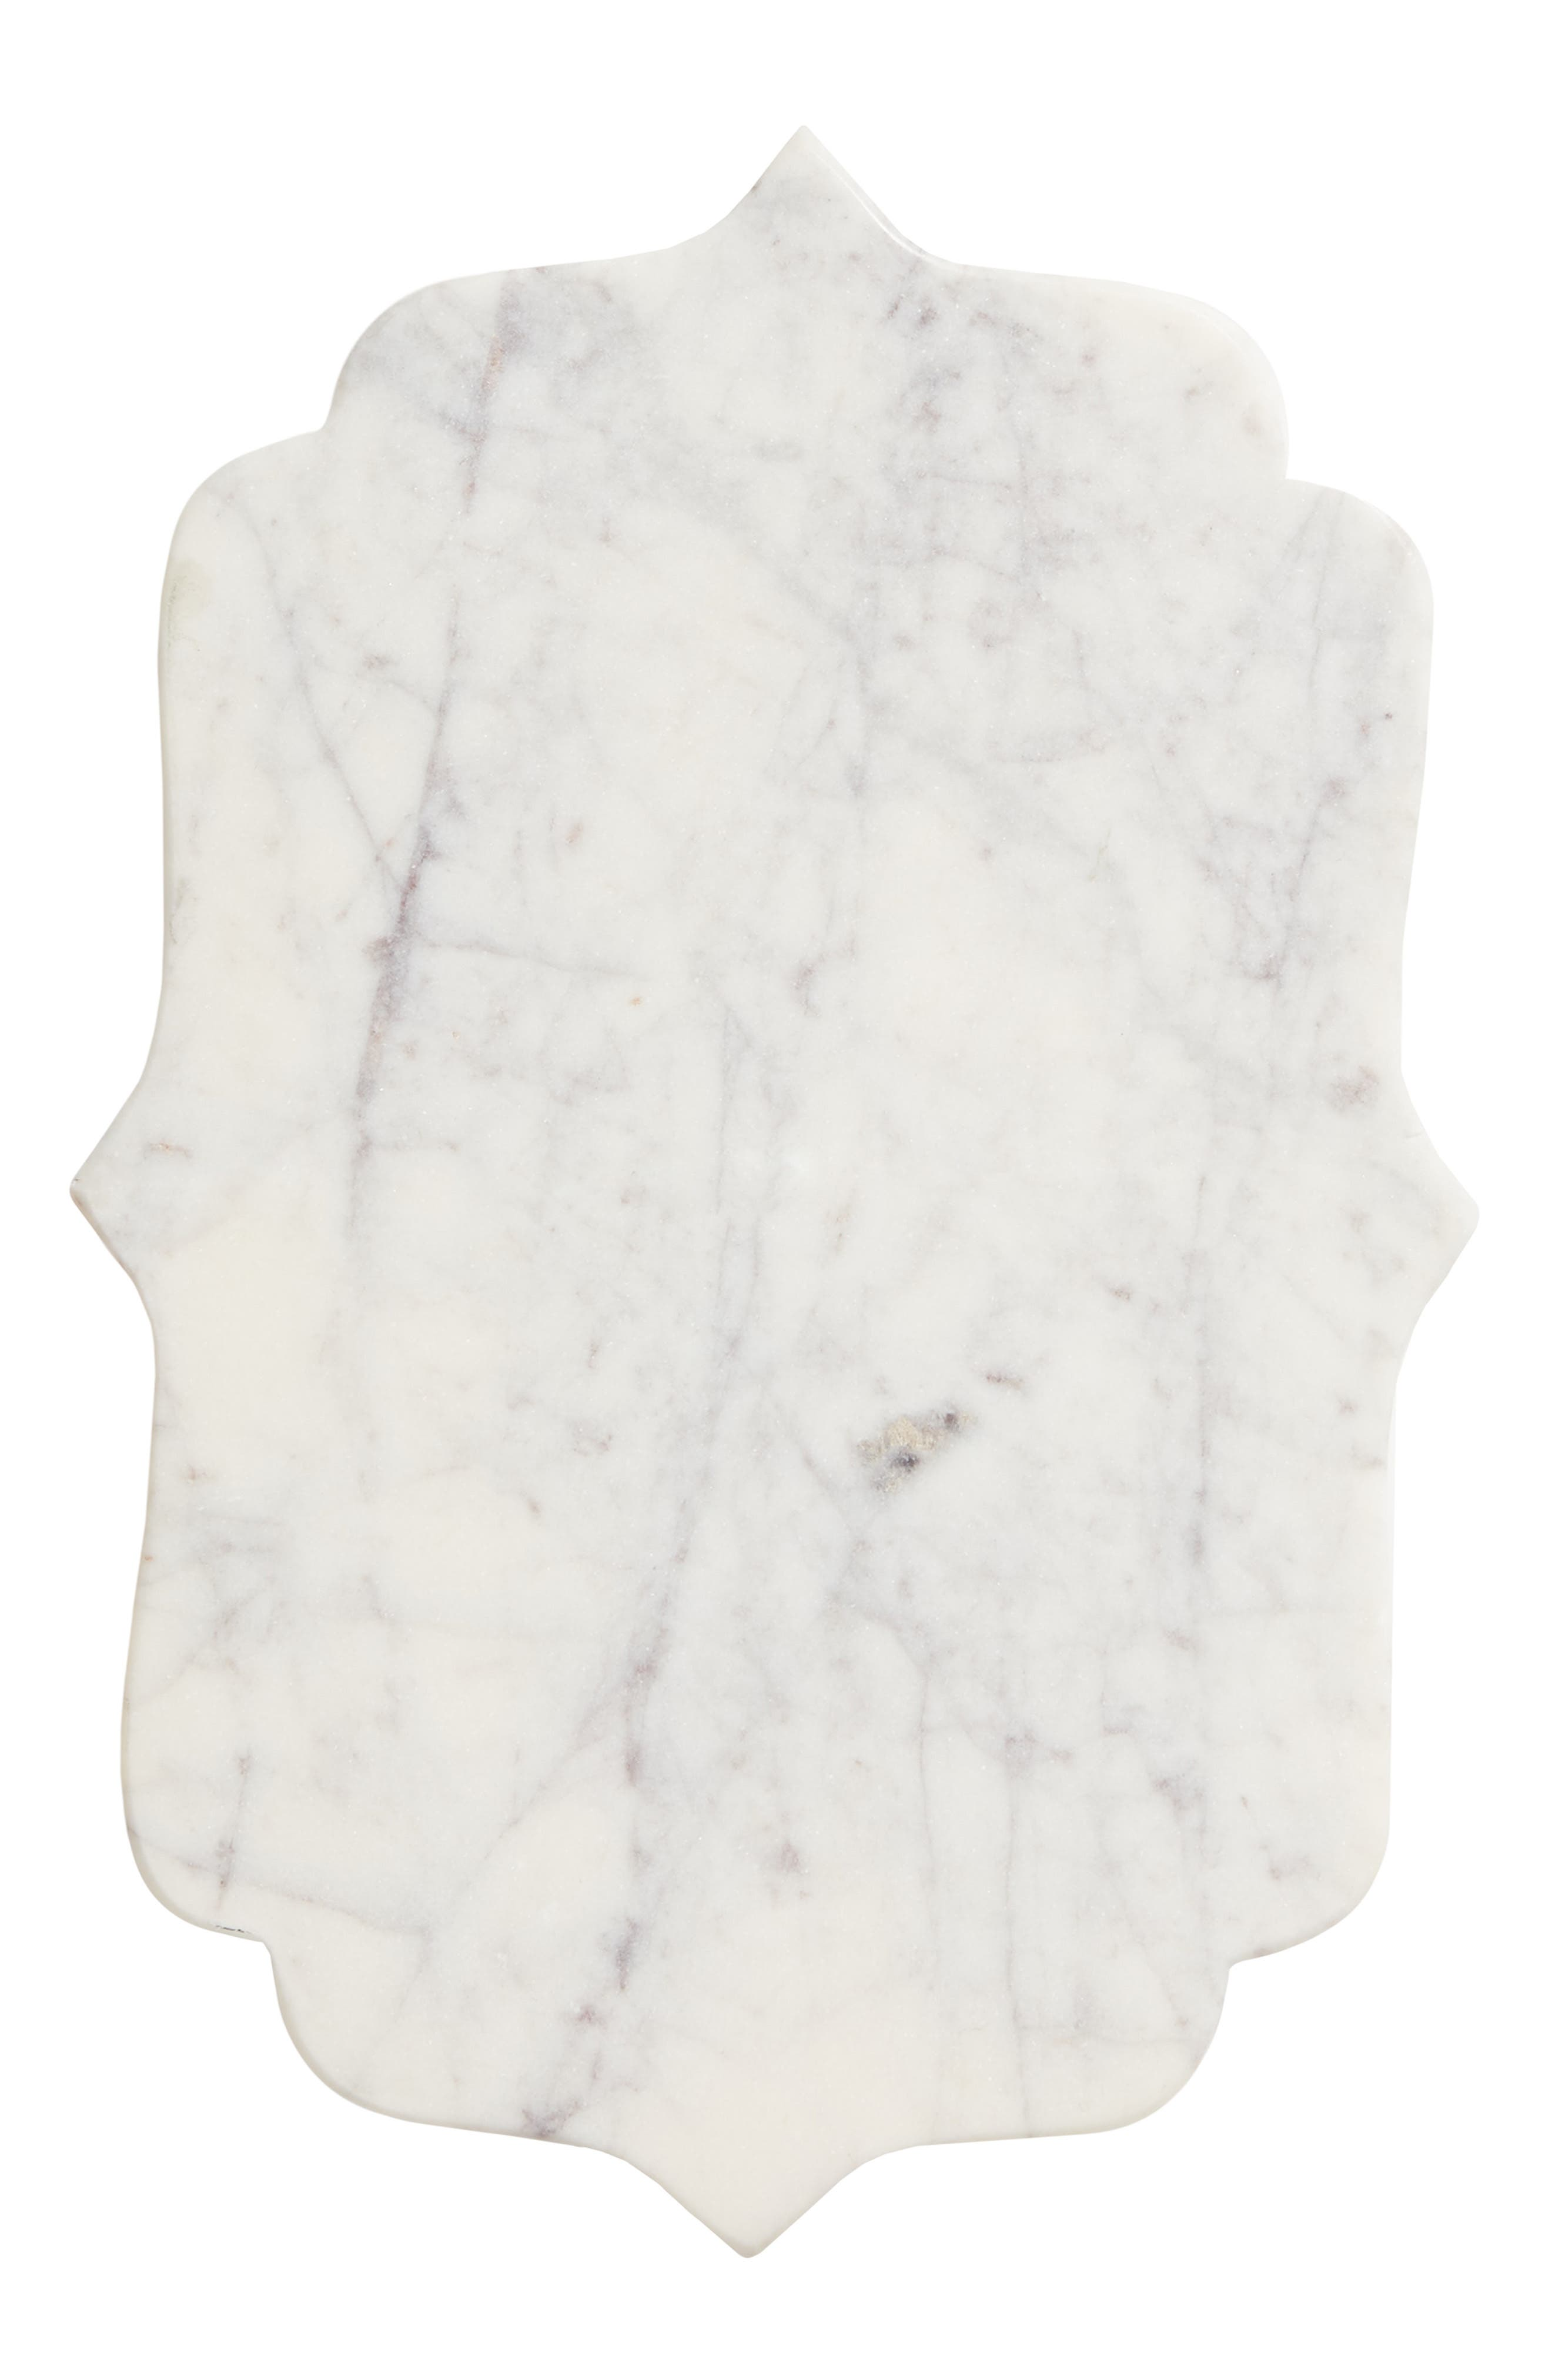 NORDSTROM AT HOME, Lavender Marble Serving Tray, Main thumbnail 1, color, WHITE